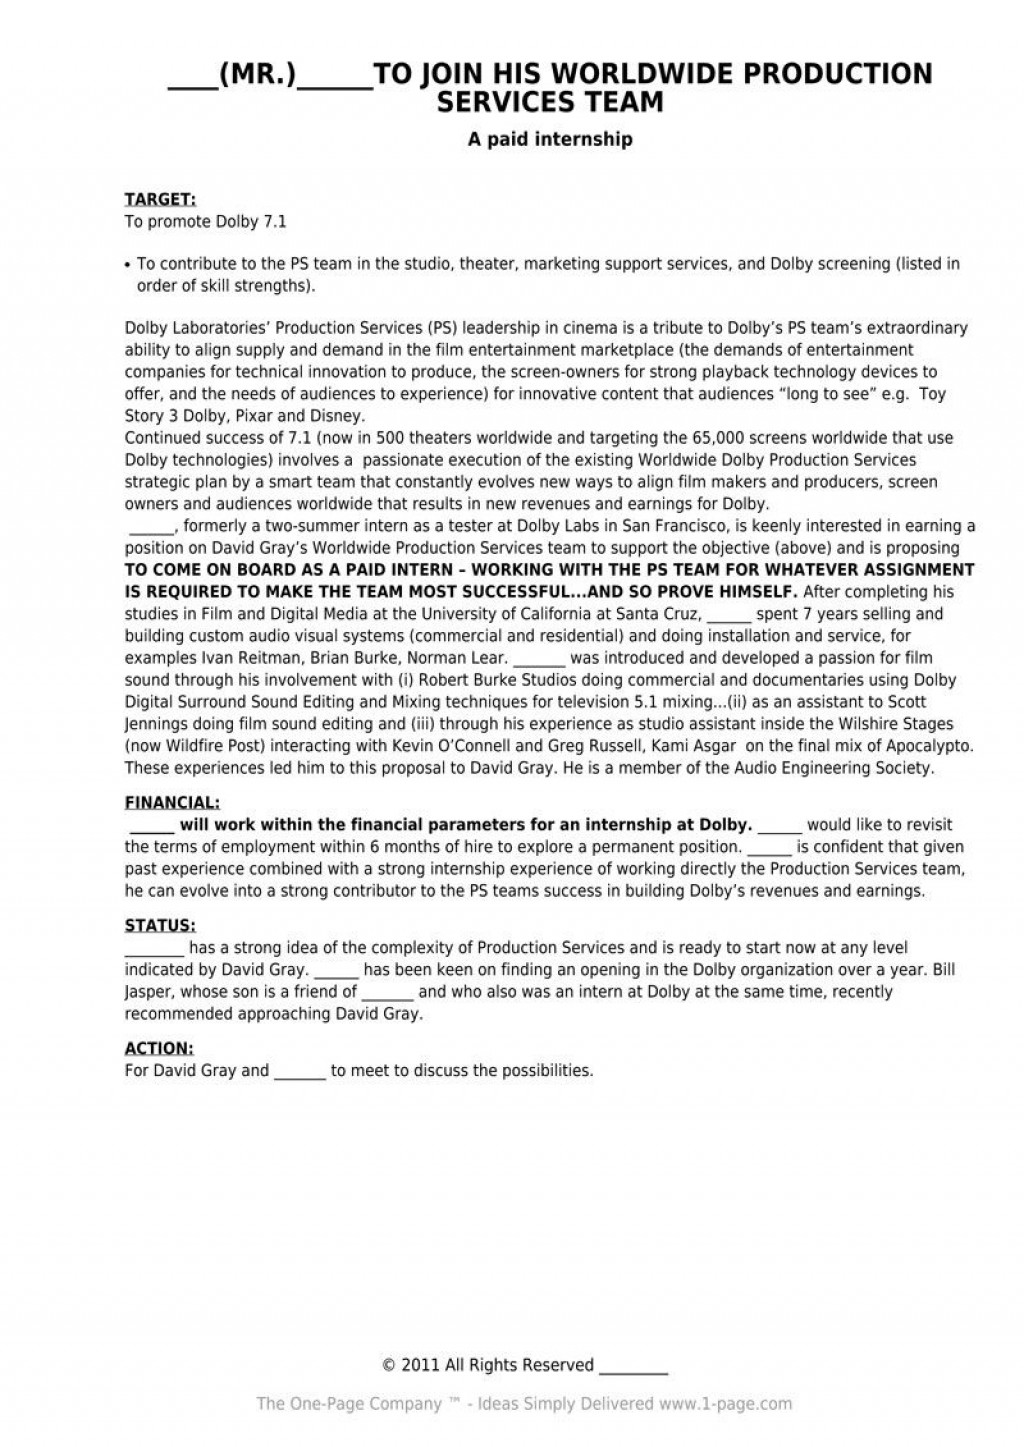 006 Research Paper Business Law And Ethics Stirring Topics Large